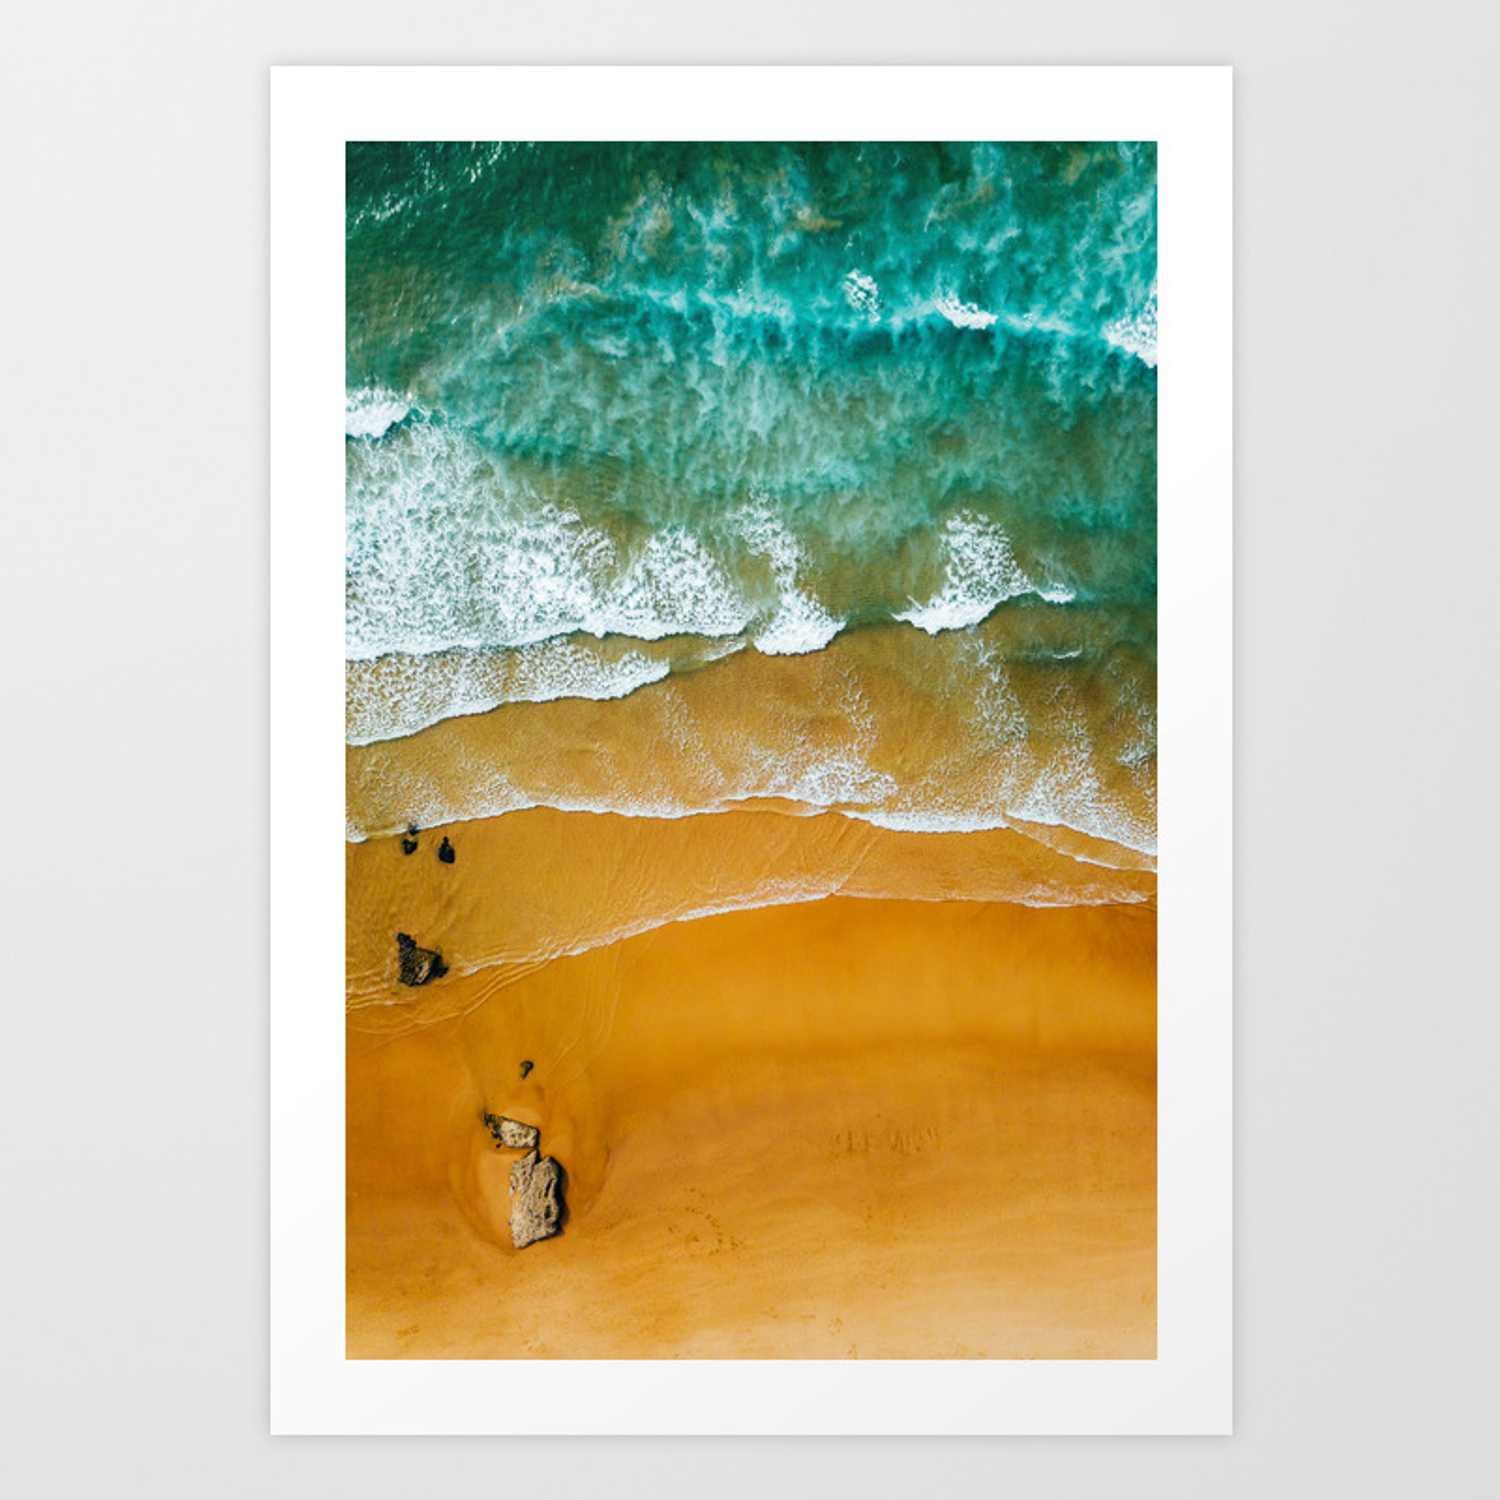 Drone Photography Prints